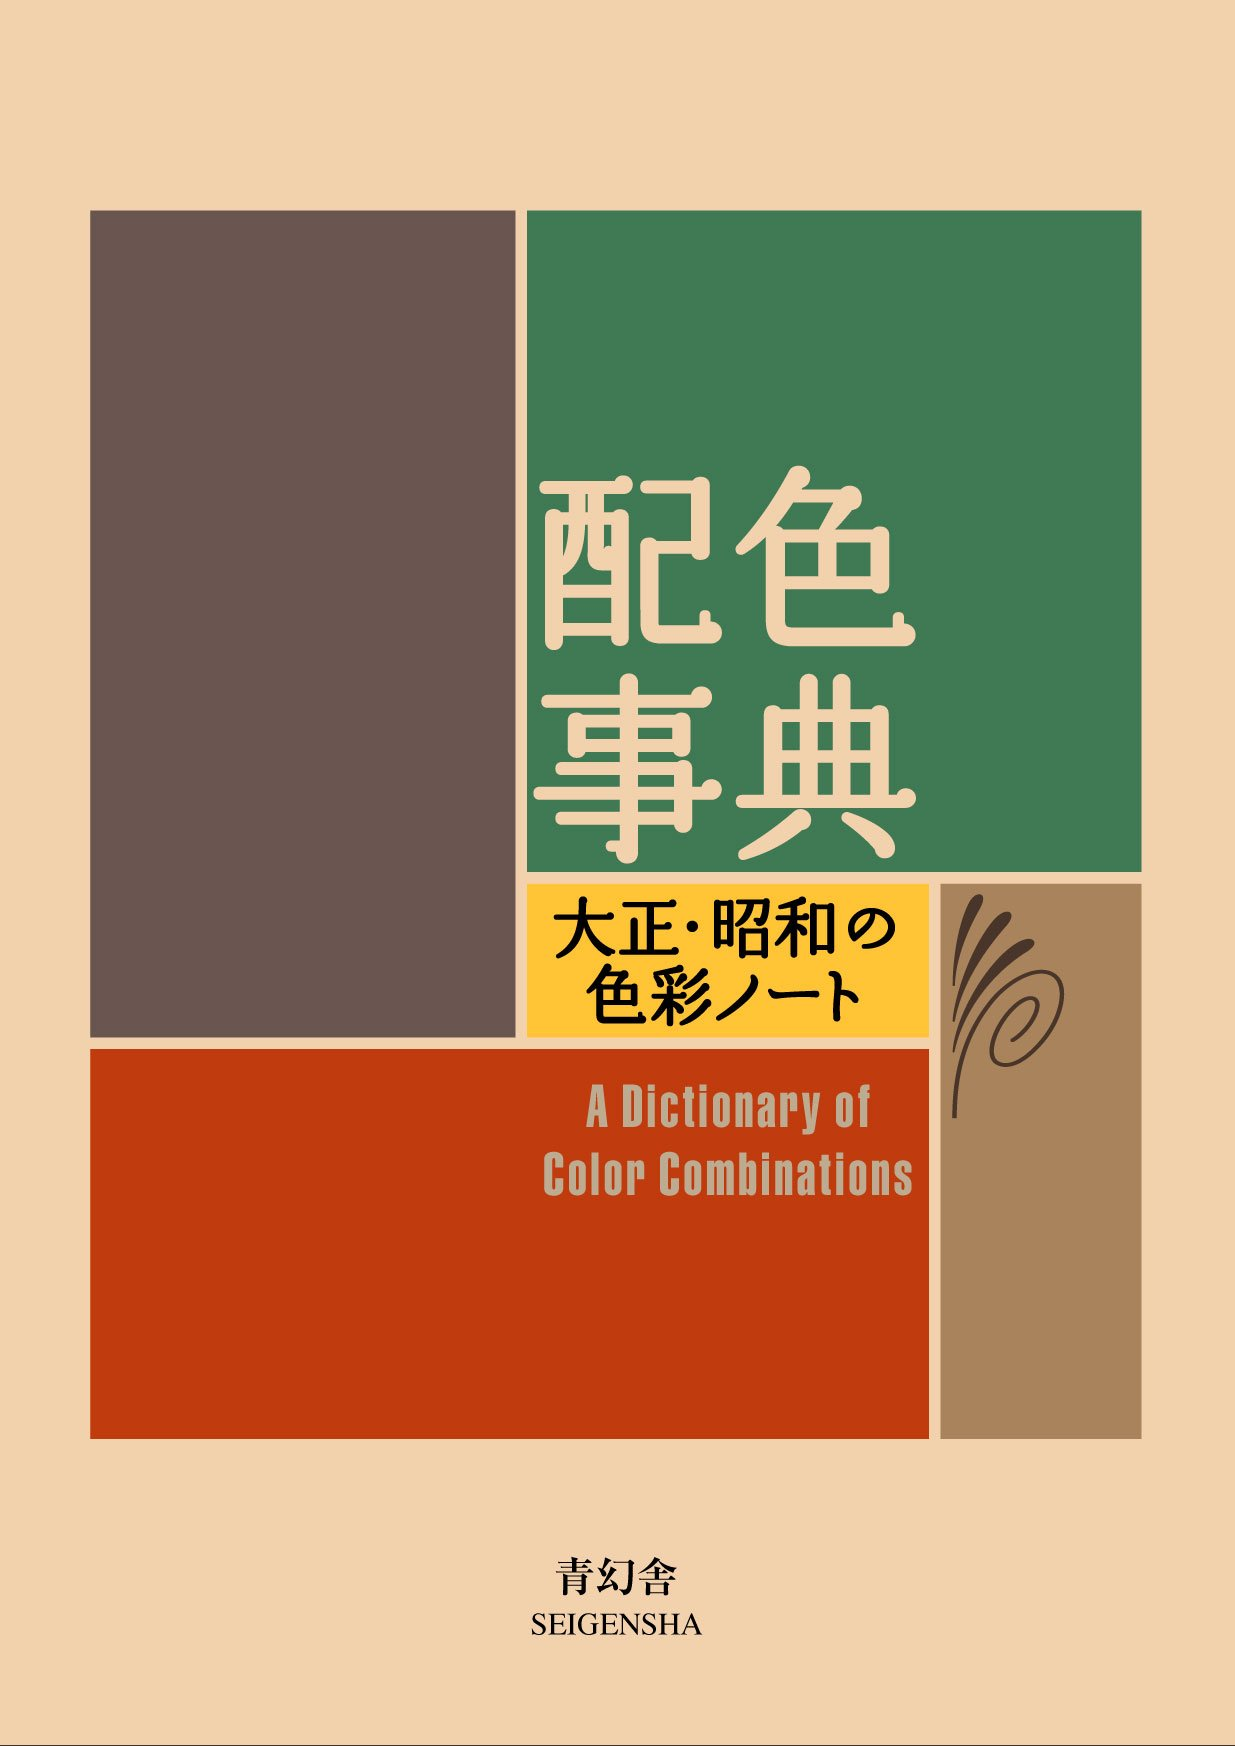 A Dictionary Color binations Various Amazon